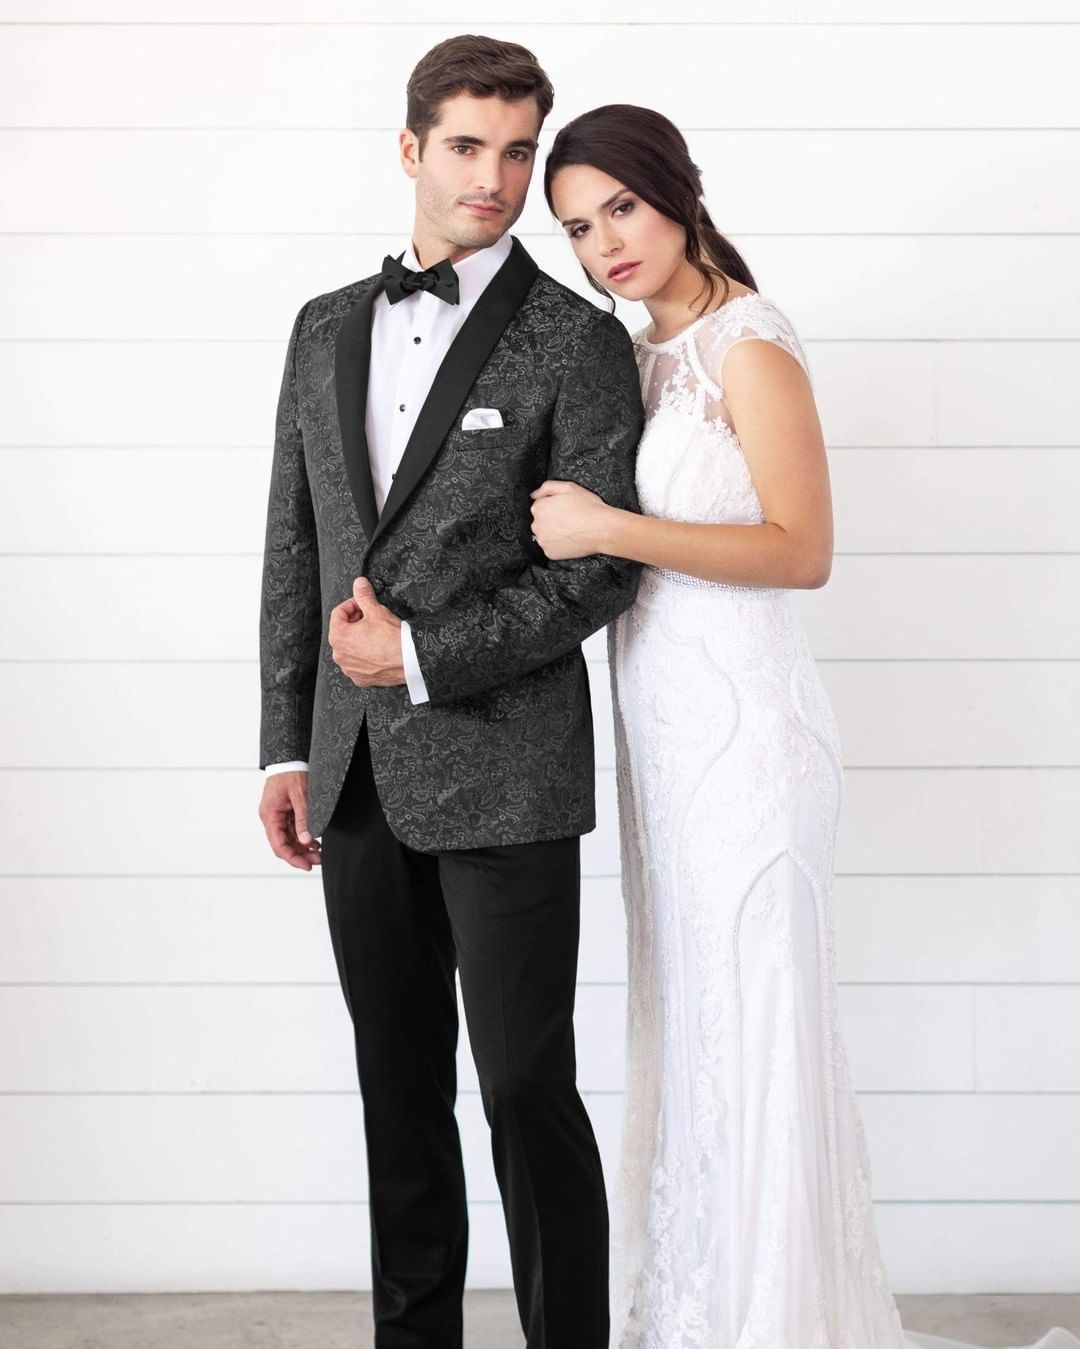 Expect to be noticed in the Granite Paisley Aries Tuxedo